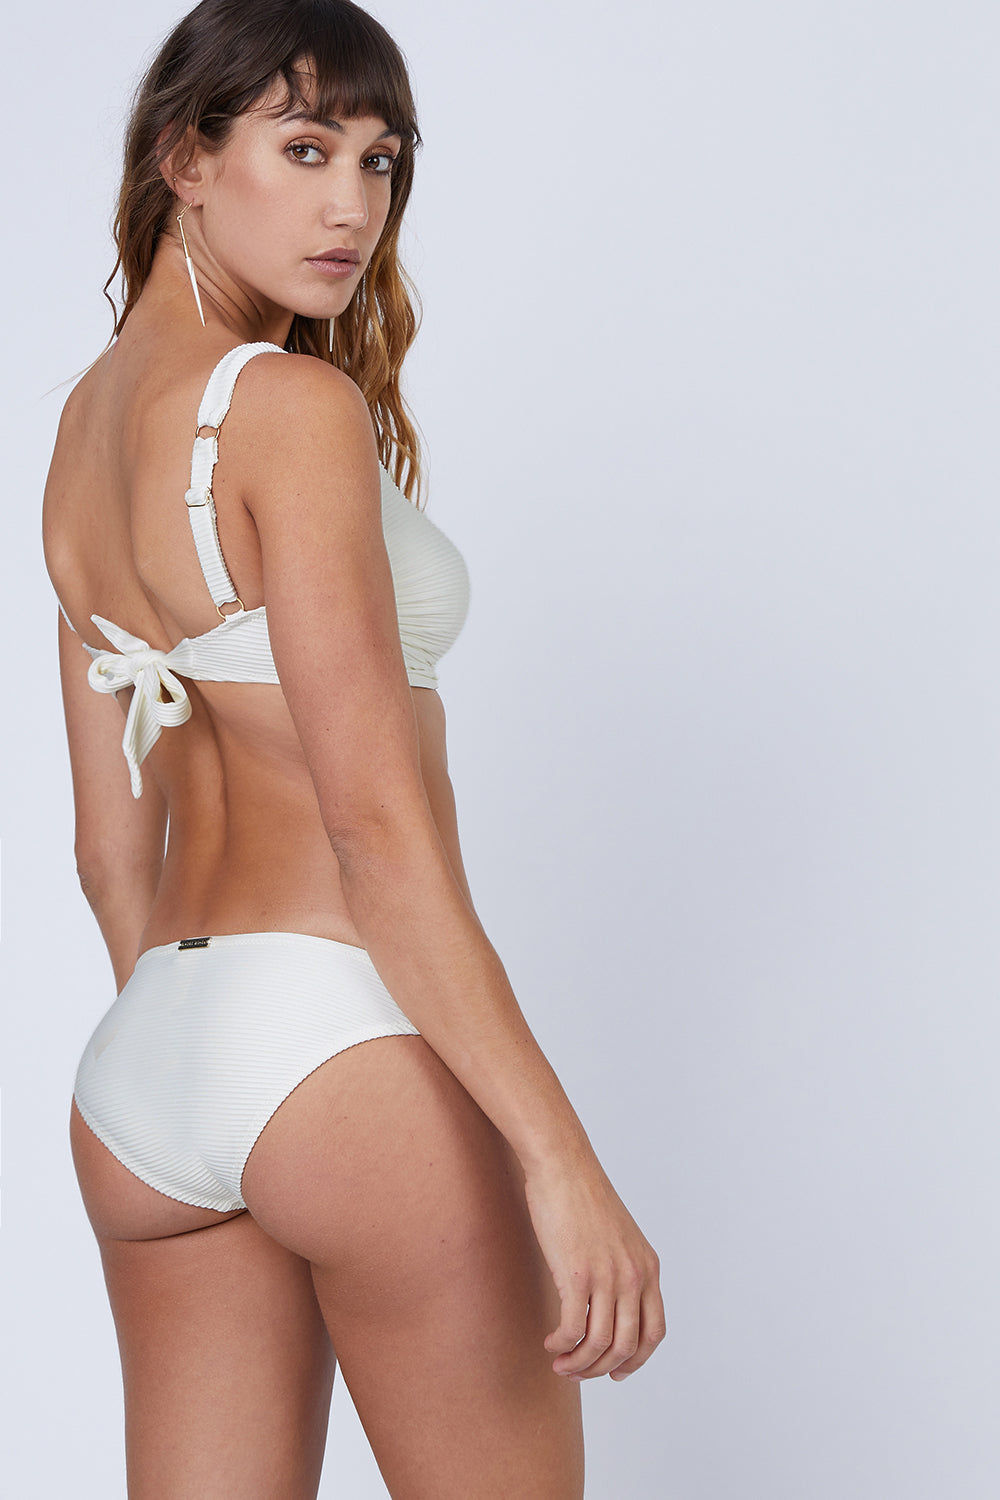 HEIDI KLEIN Rectangle Ribbed Bikini Bottom - Cream White Bikini Bottom | Cream White|Heidi Klein Rectangle Ribbed Bikini Bottom - Cream White. Features:  Fully elasticated along waist and legs for a snug fit and to help stay in place when wearer is swimming and fully lined in soft lining for ultimate comfort. Heidi Klein branded charm detail on back for a luxurious finish. Features bespoke Heidi Klein shiny rectangle hardware at the side seams. Back View